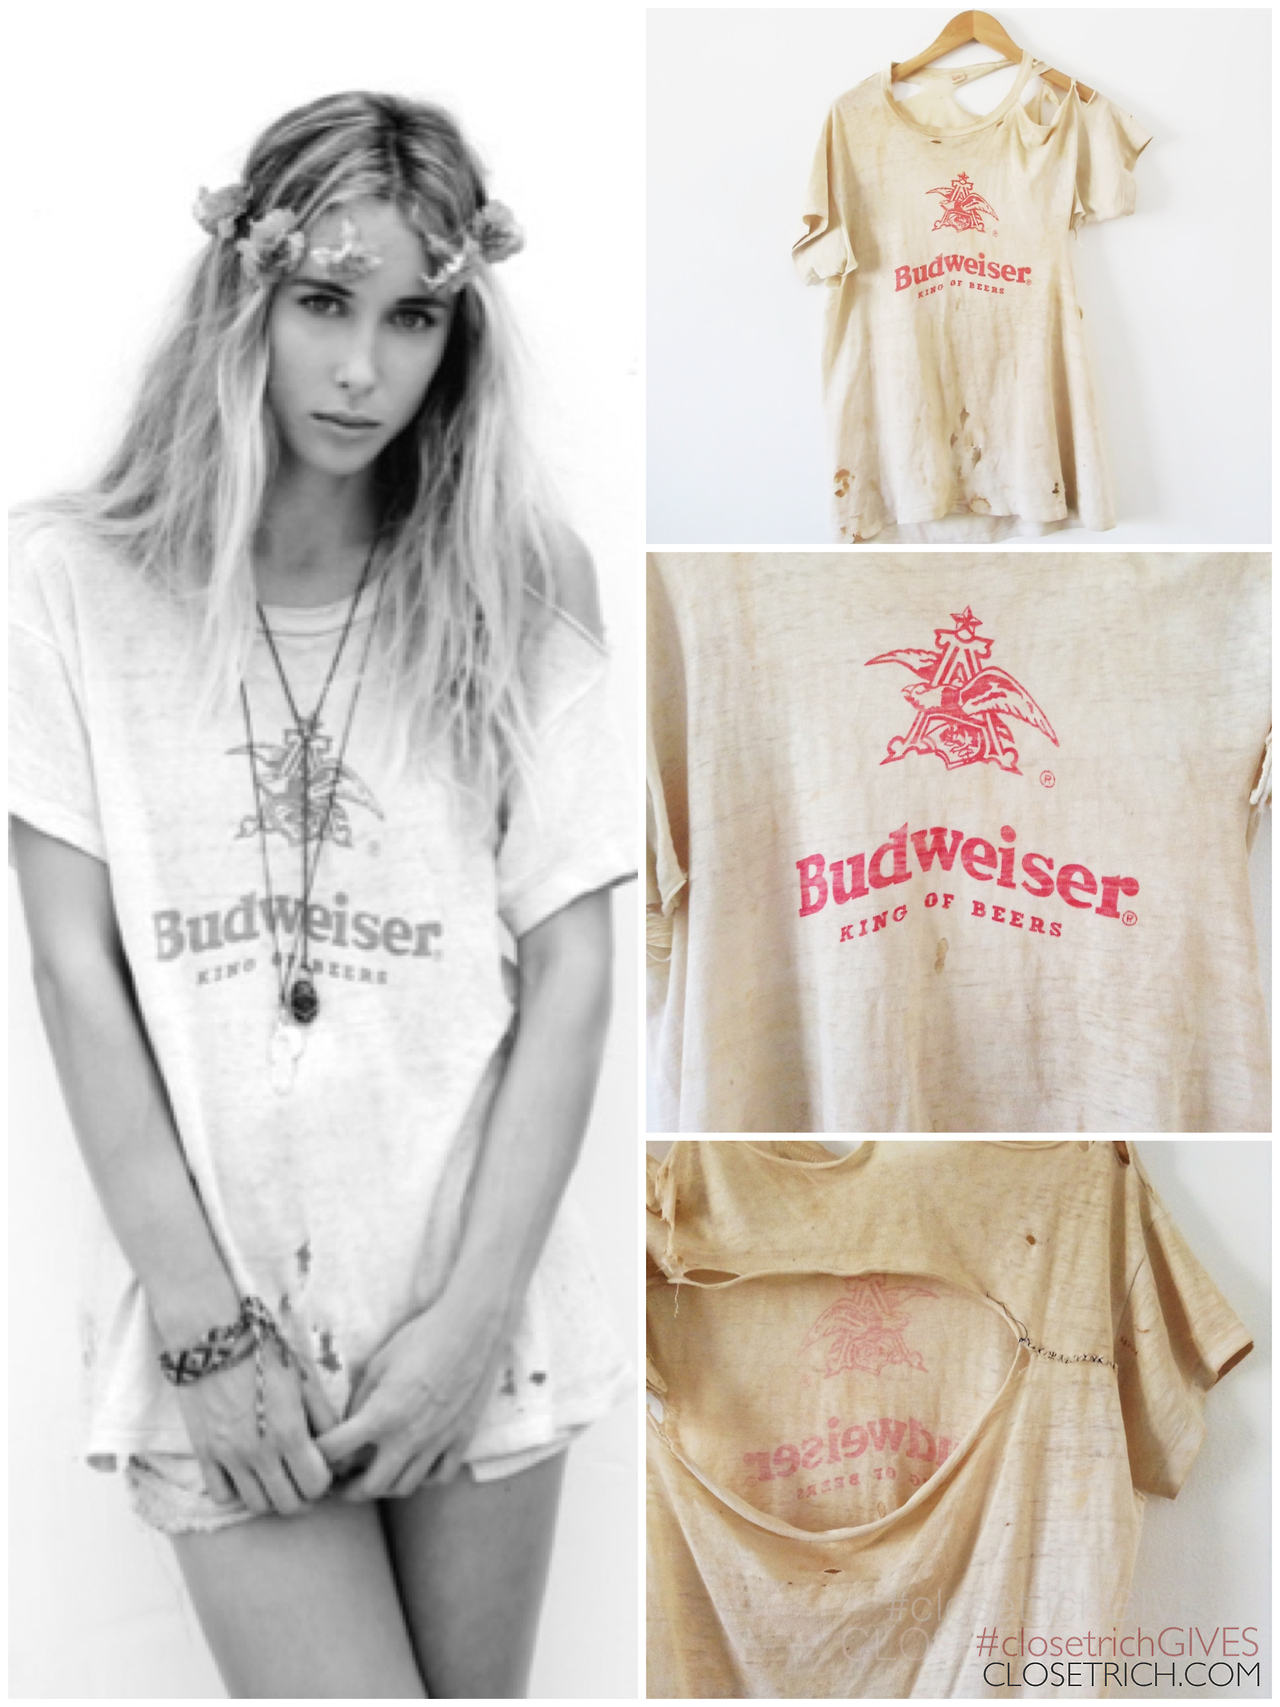 Gillian Zinser's  Vintage Budweiser Tee , $200           **50% of proceeds from this sale are going to Waves for Water's  Hurricane Sandy Relief Initiative